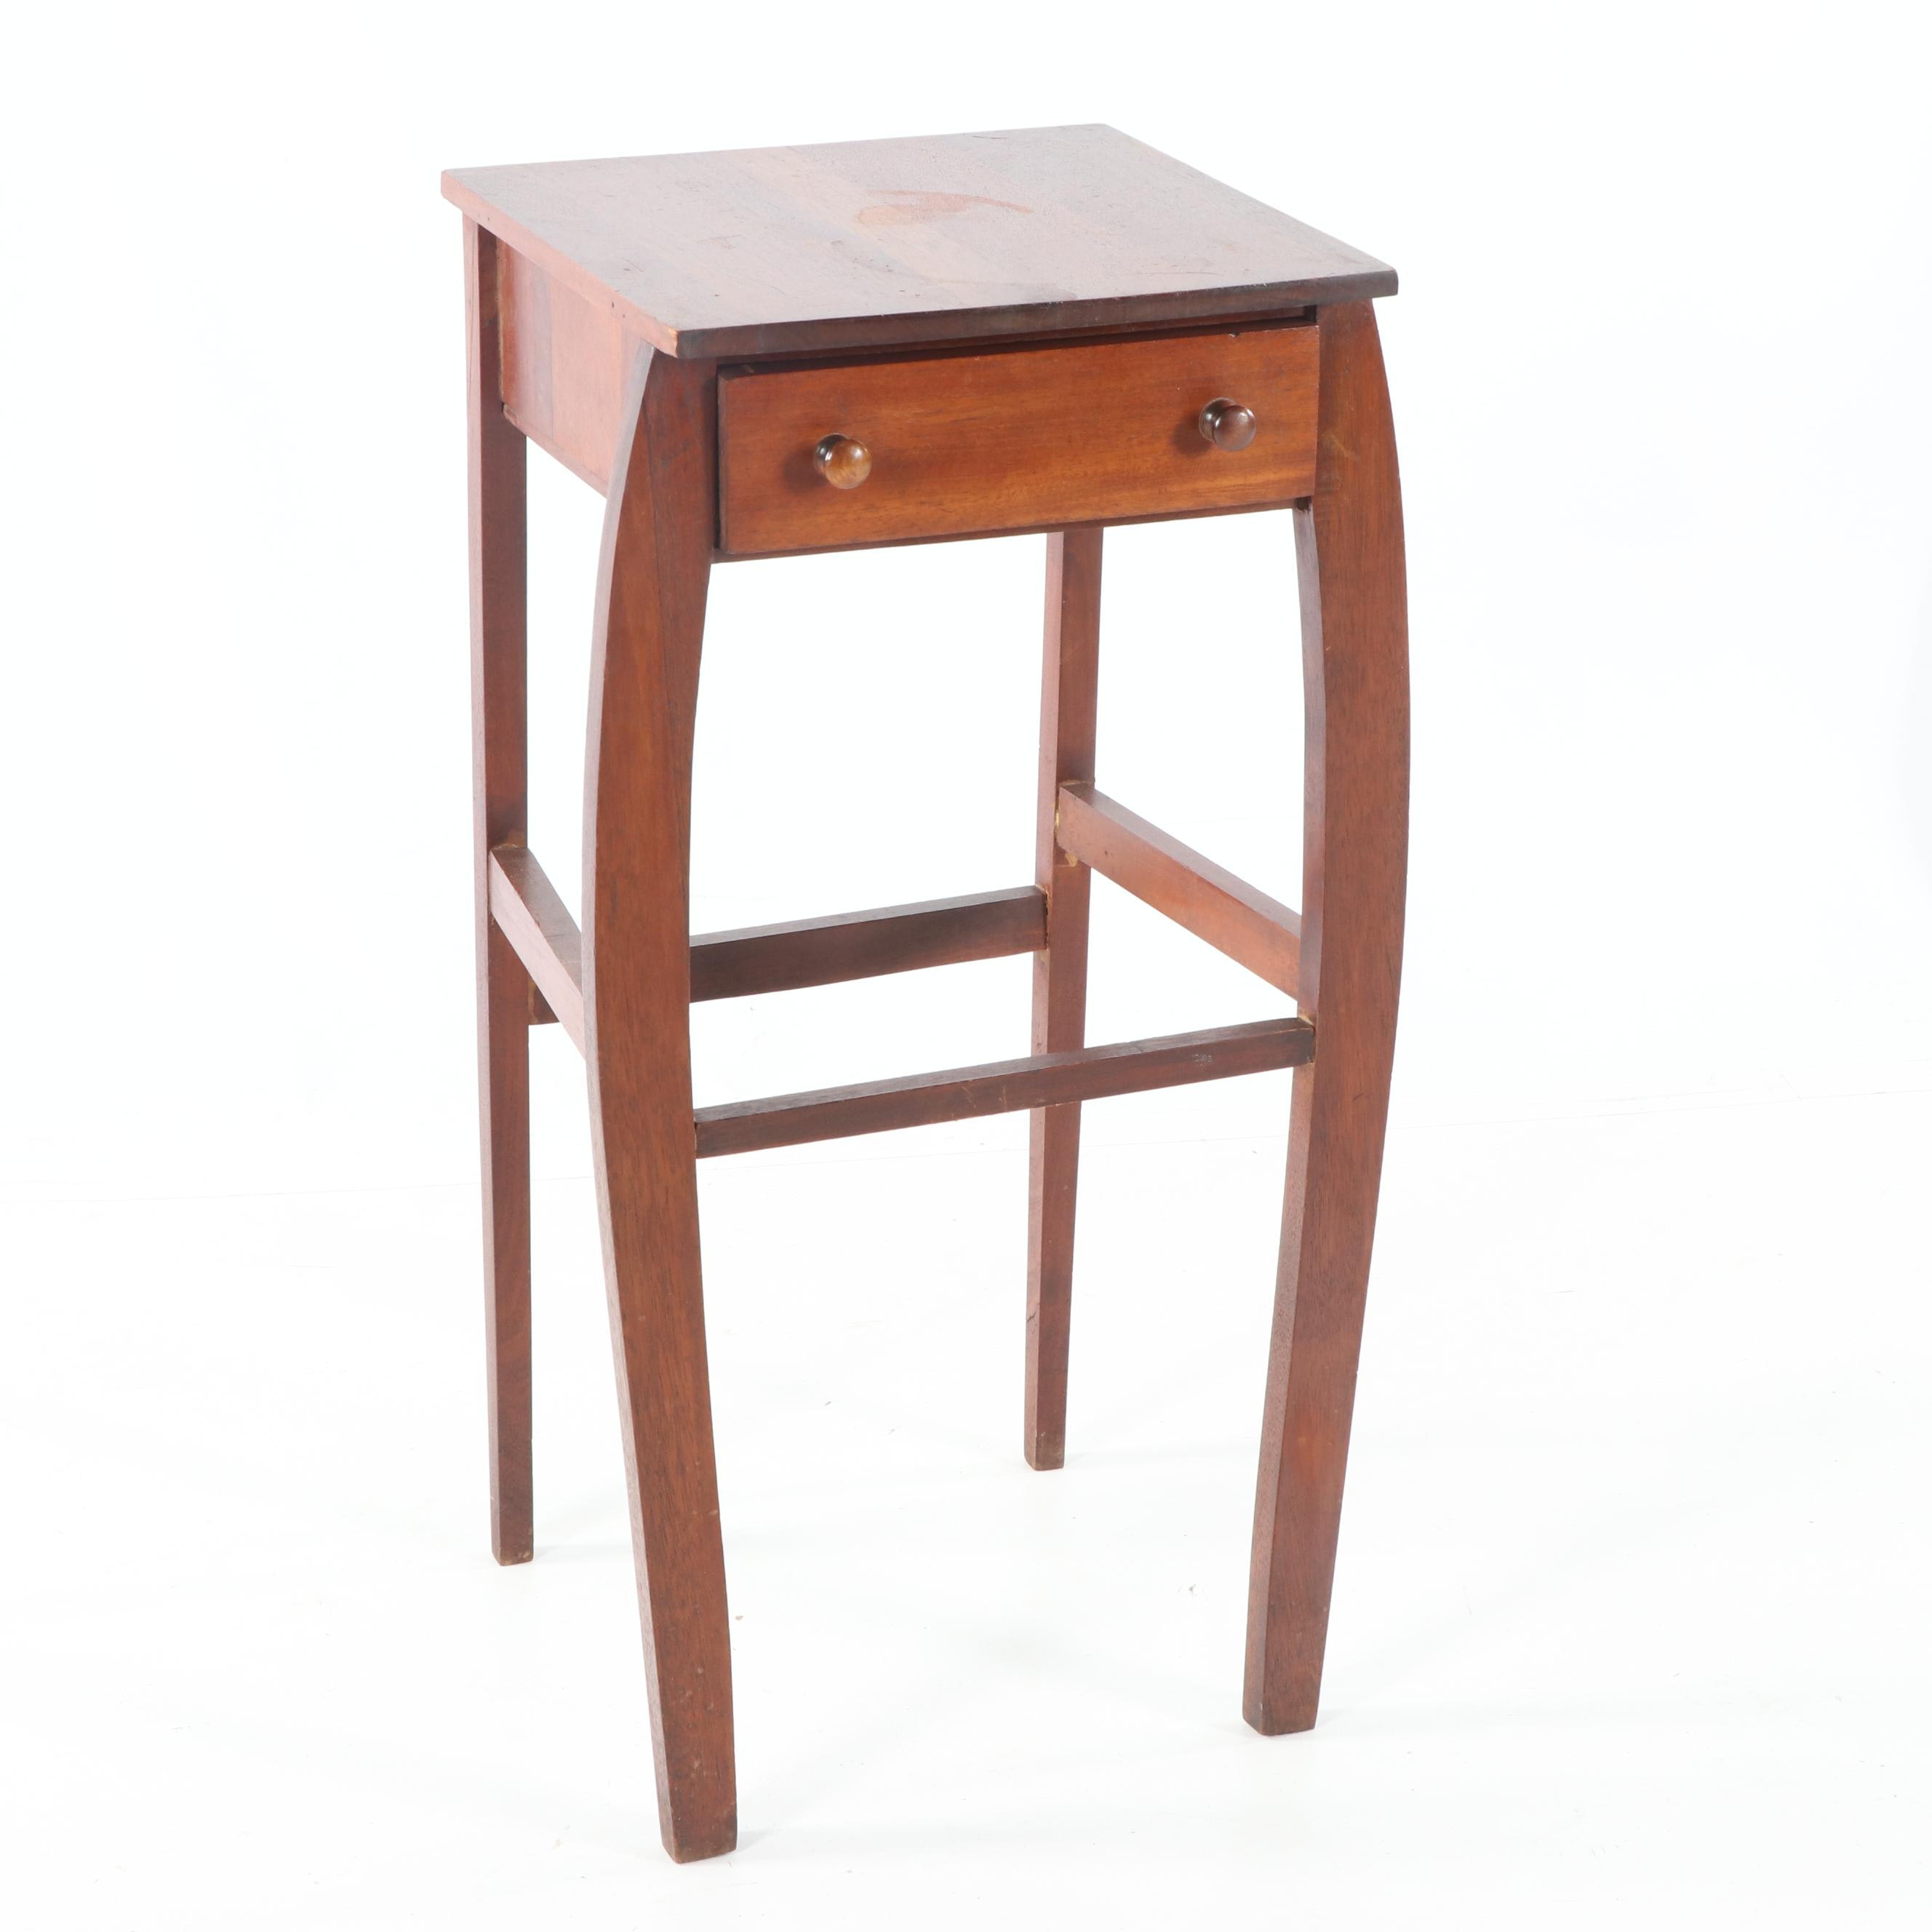 Mahogany Side Table with Drawer by Imperial, Mid-20th Century